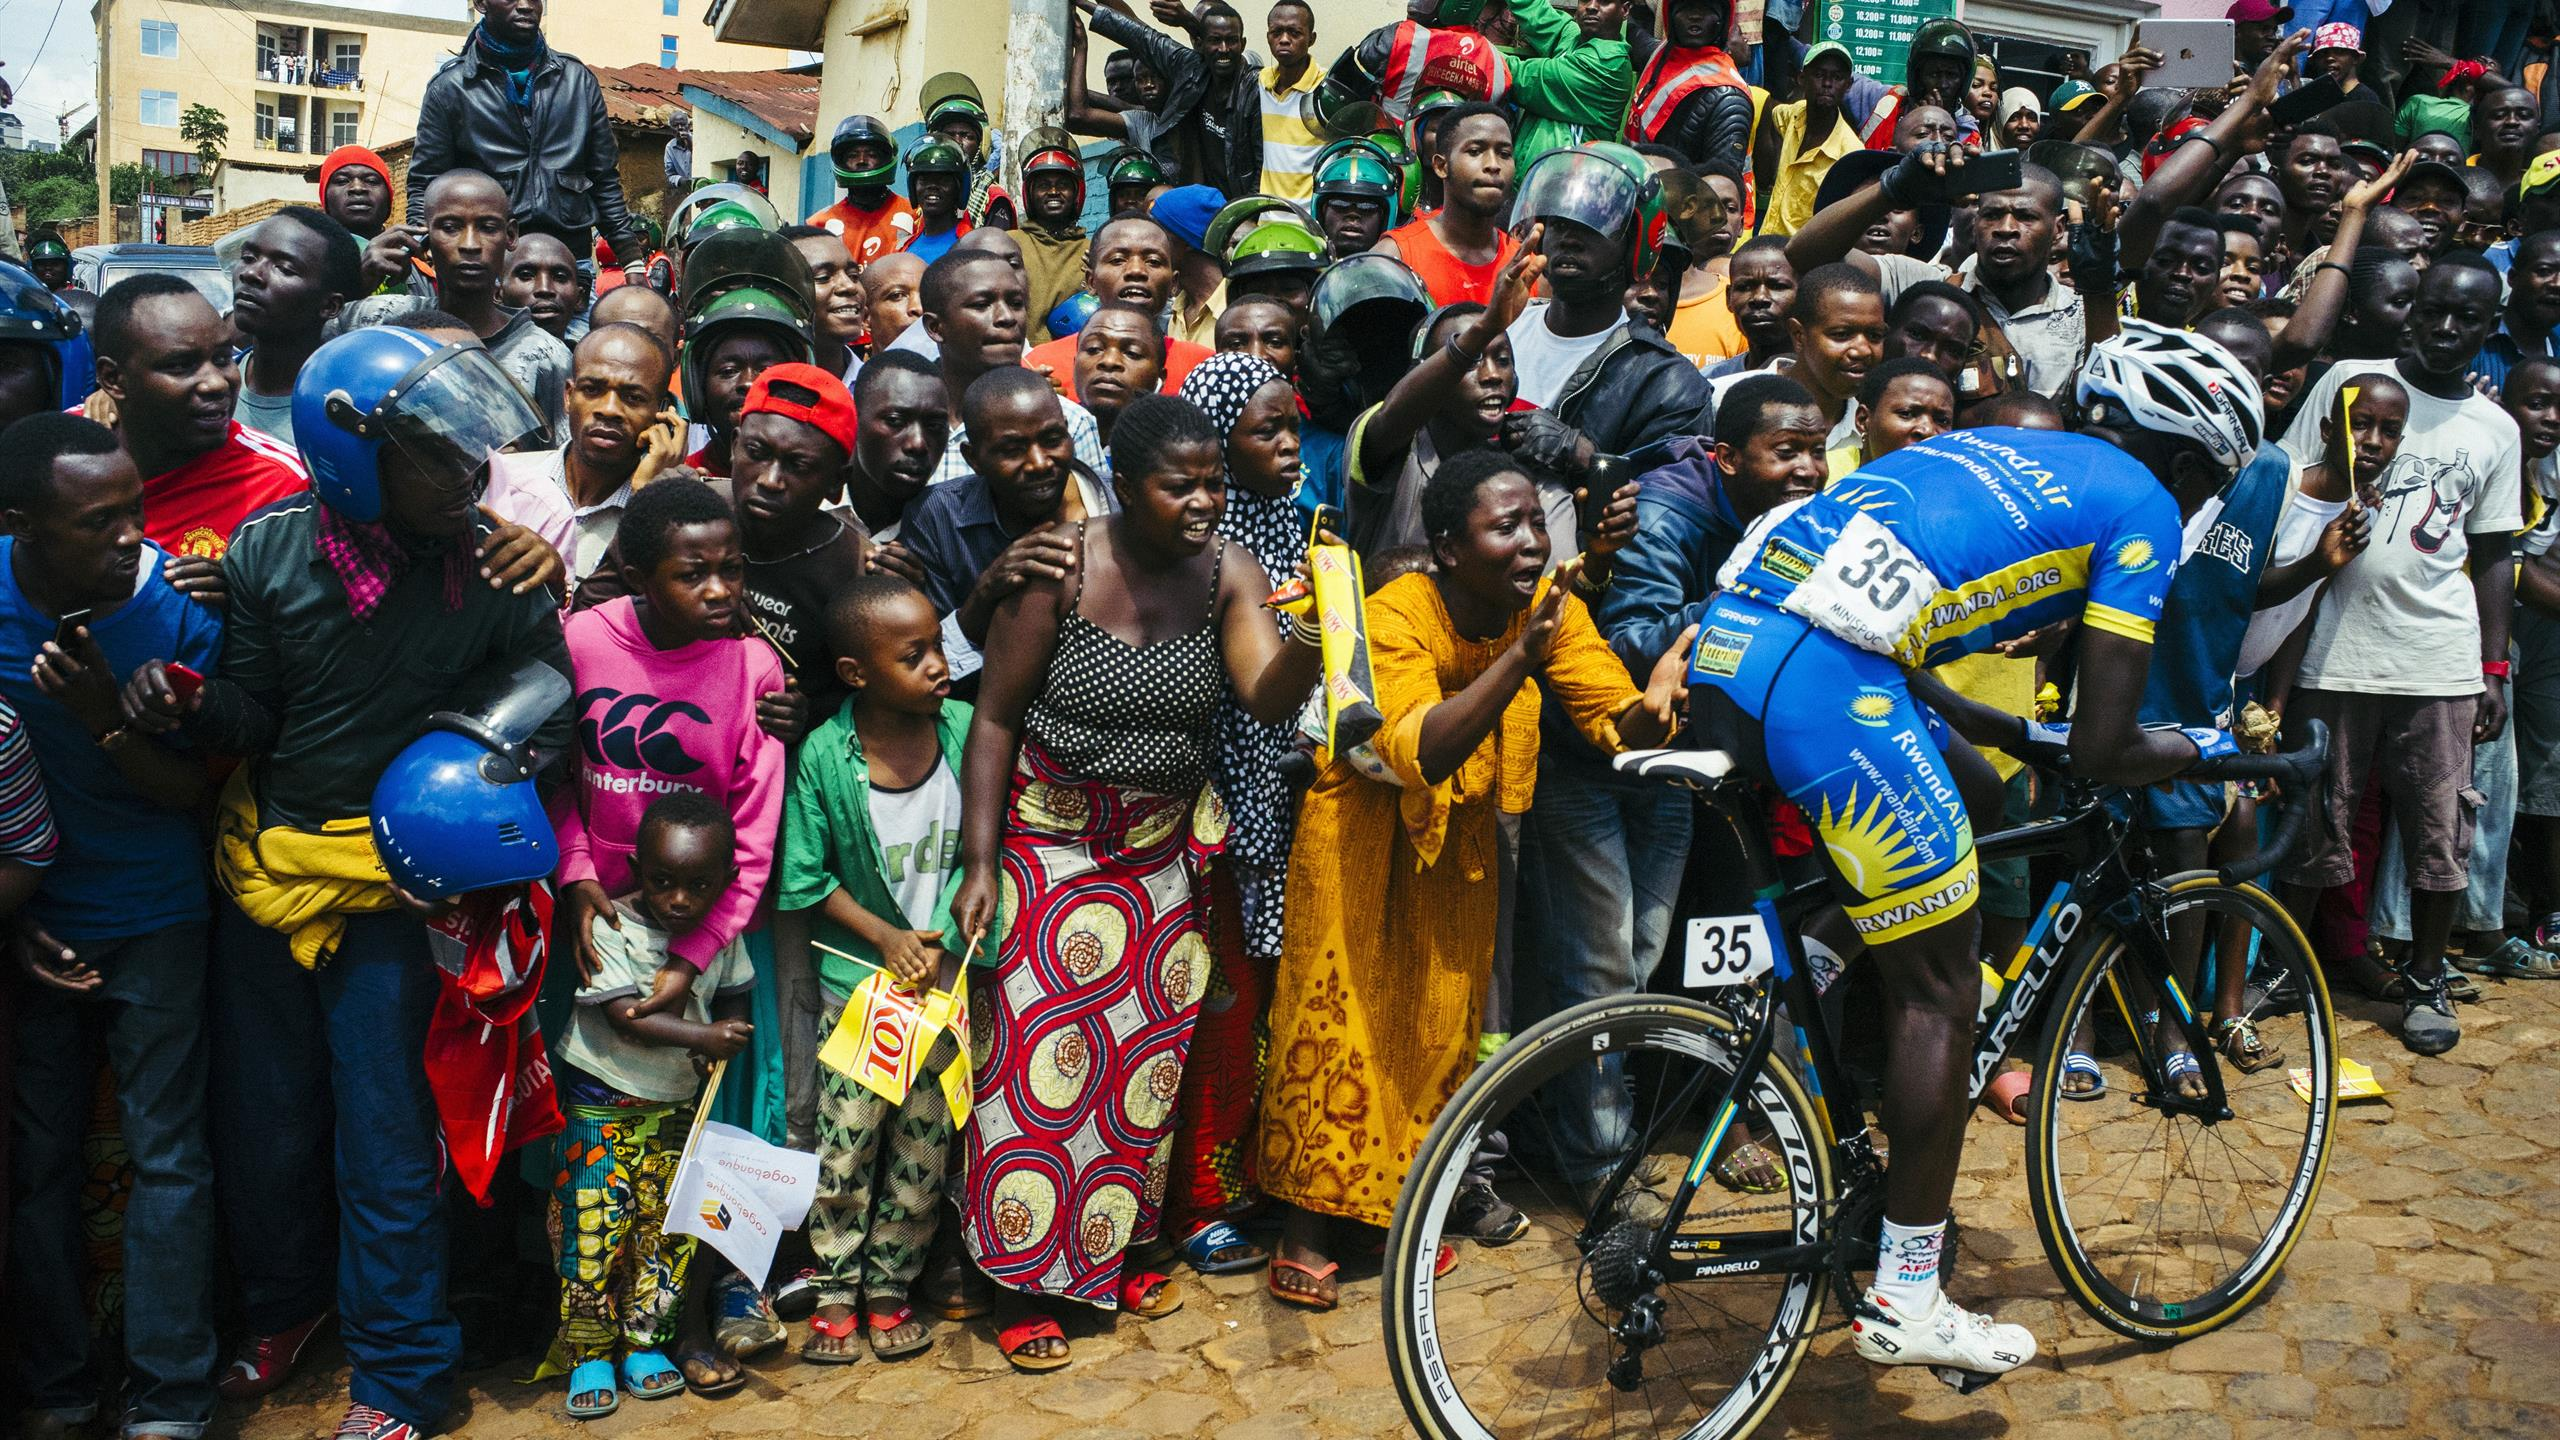 Tour du Rwanda 2021 cycling - Who is riding in Africa's biggest UCI stage race, what's the route?